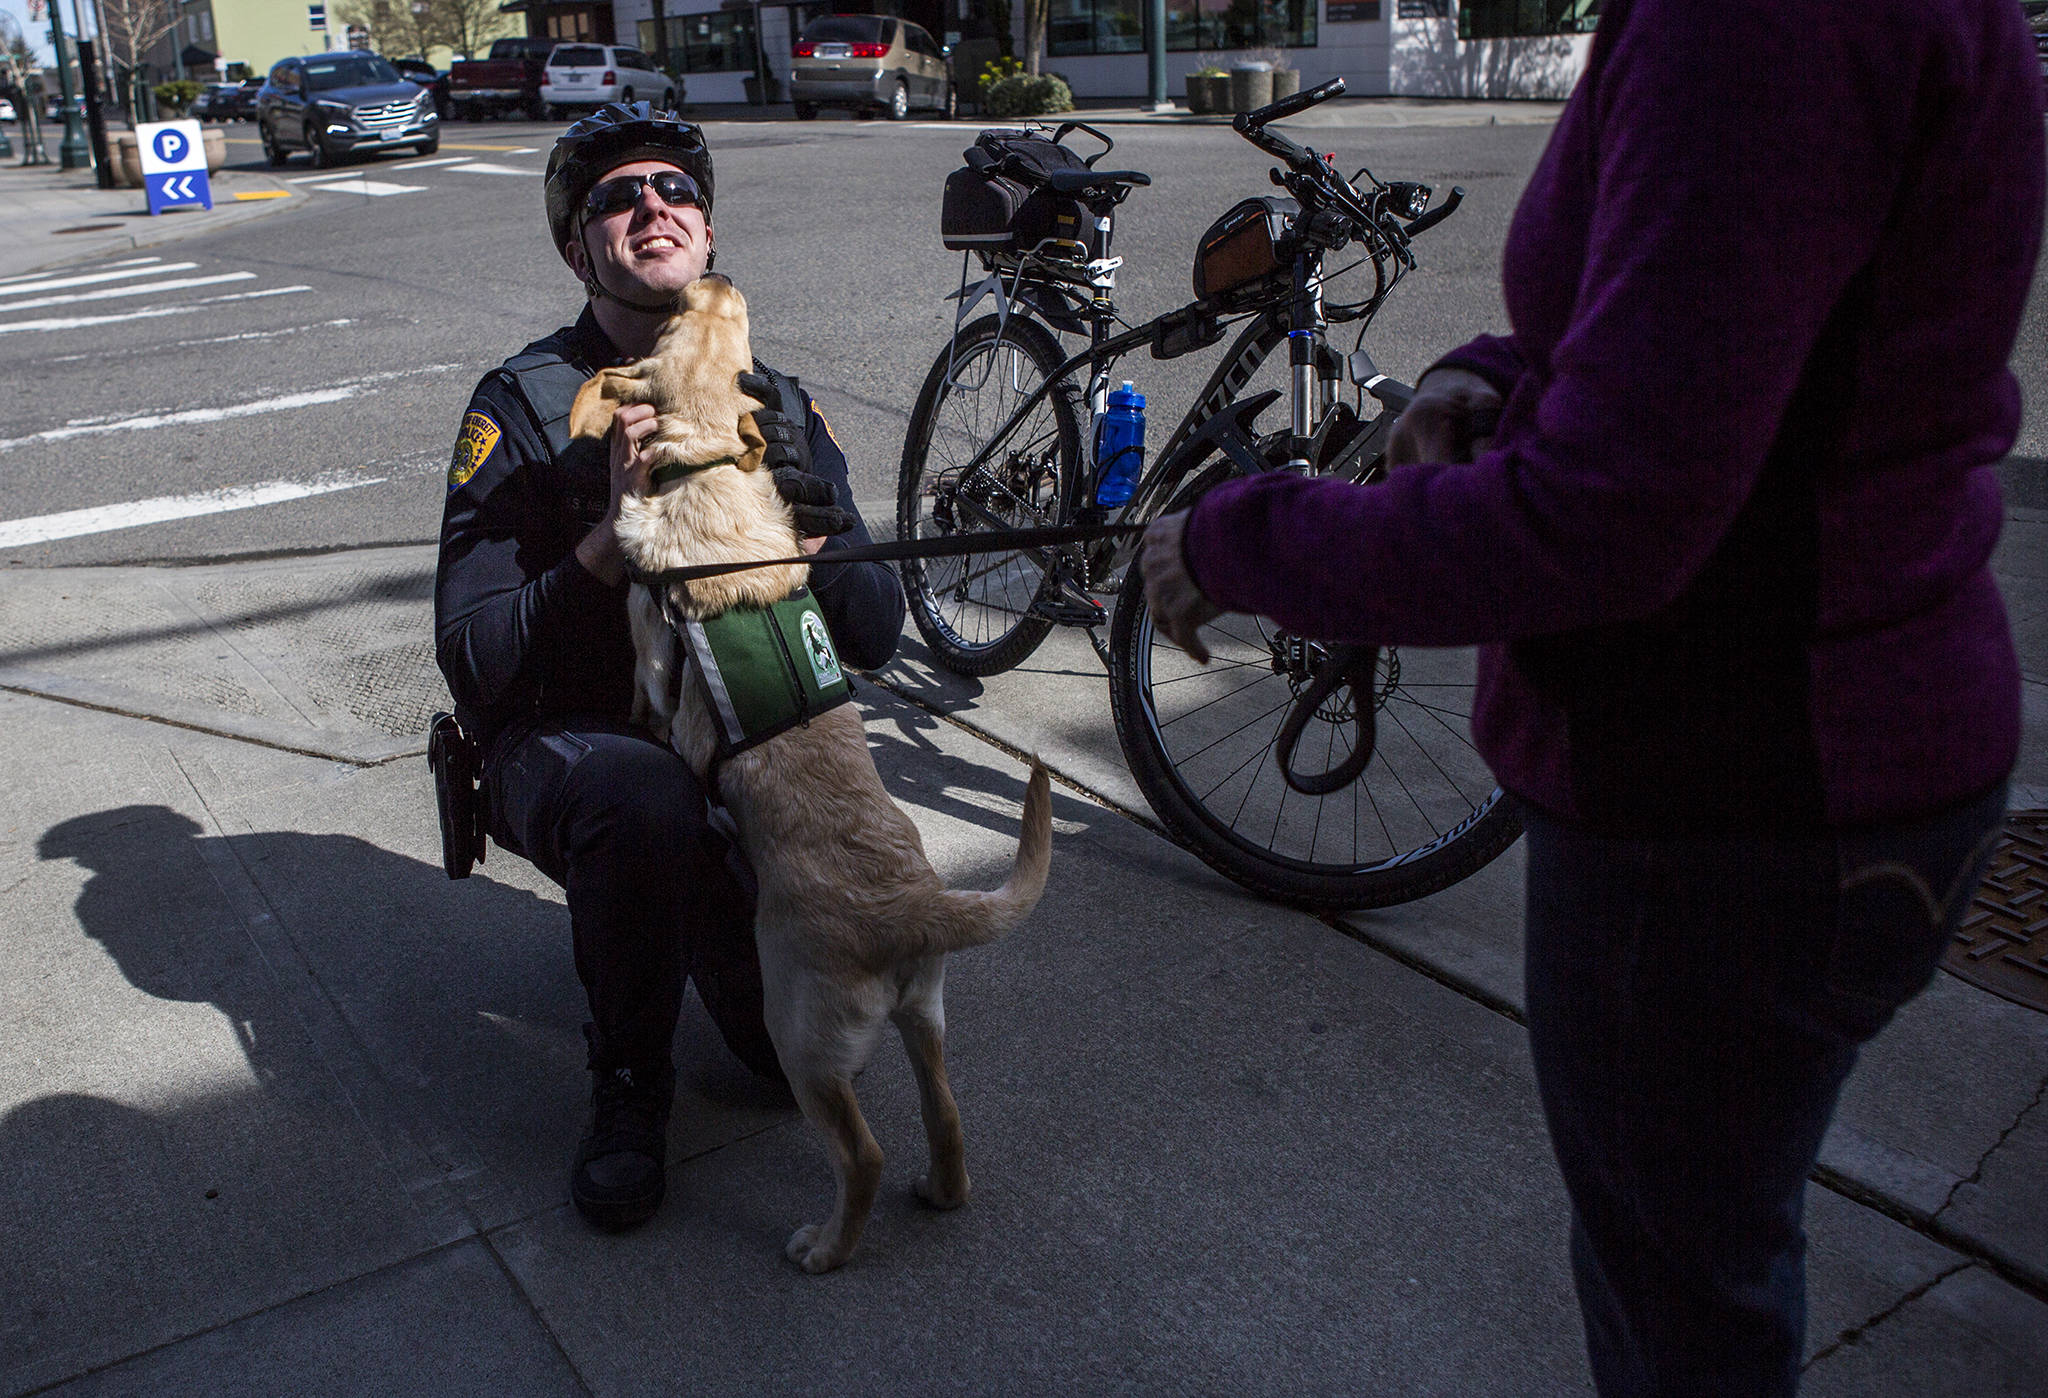 Jedi, a service dog in training, greets Officer Nelson of the Everett Police Department on March 27 in Everett. (Olivia Vanni / The Herald)